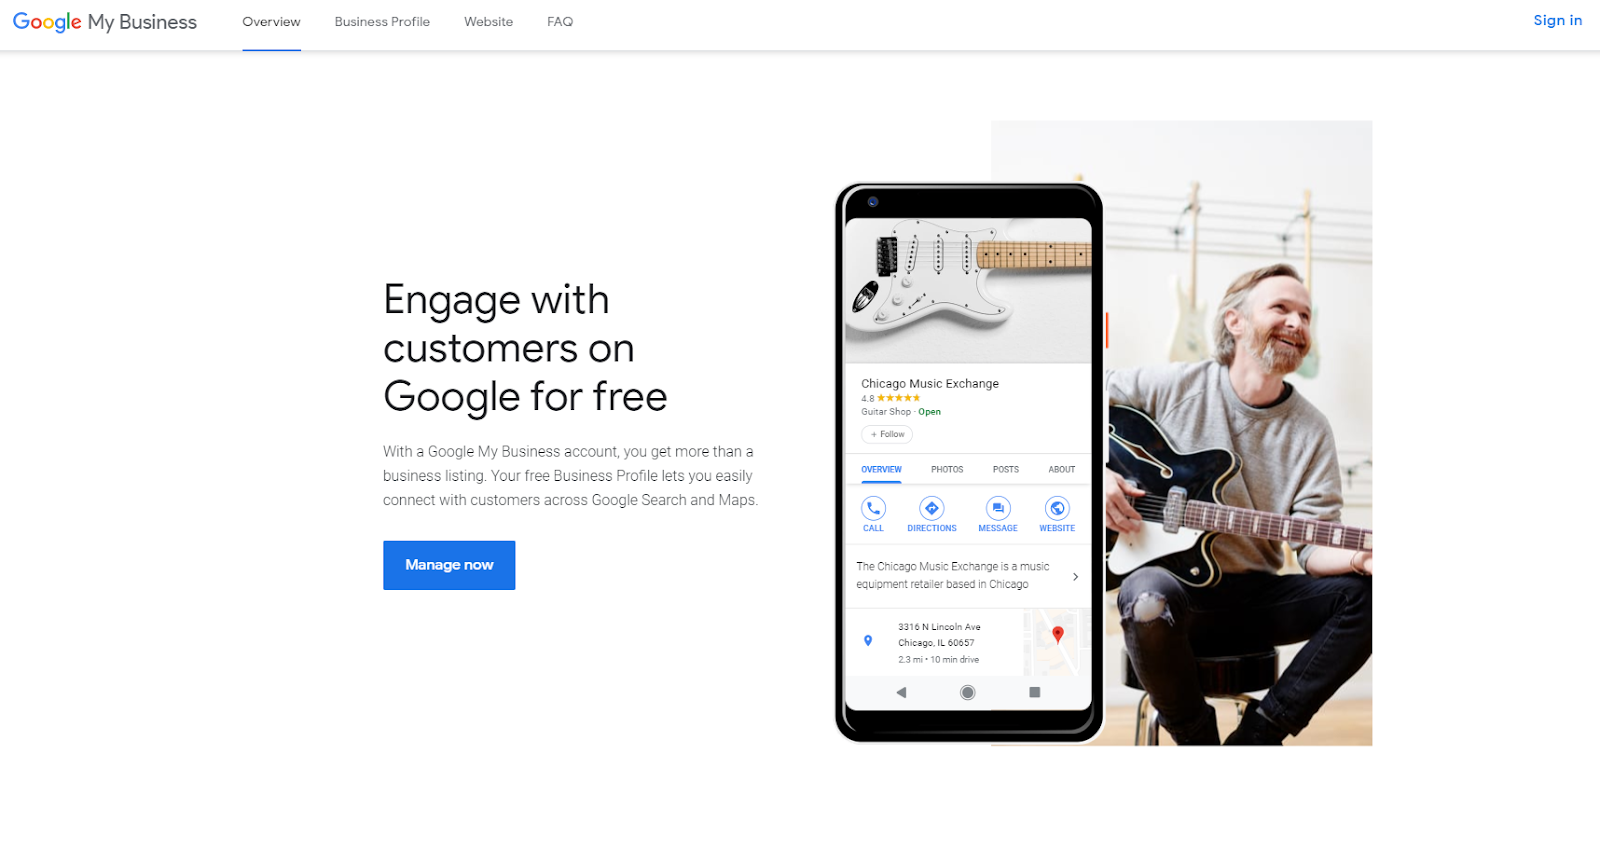 Google My Business landing pages